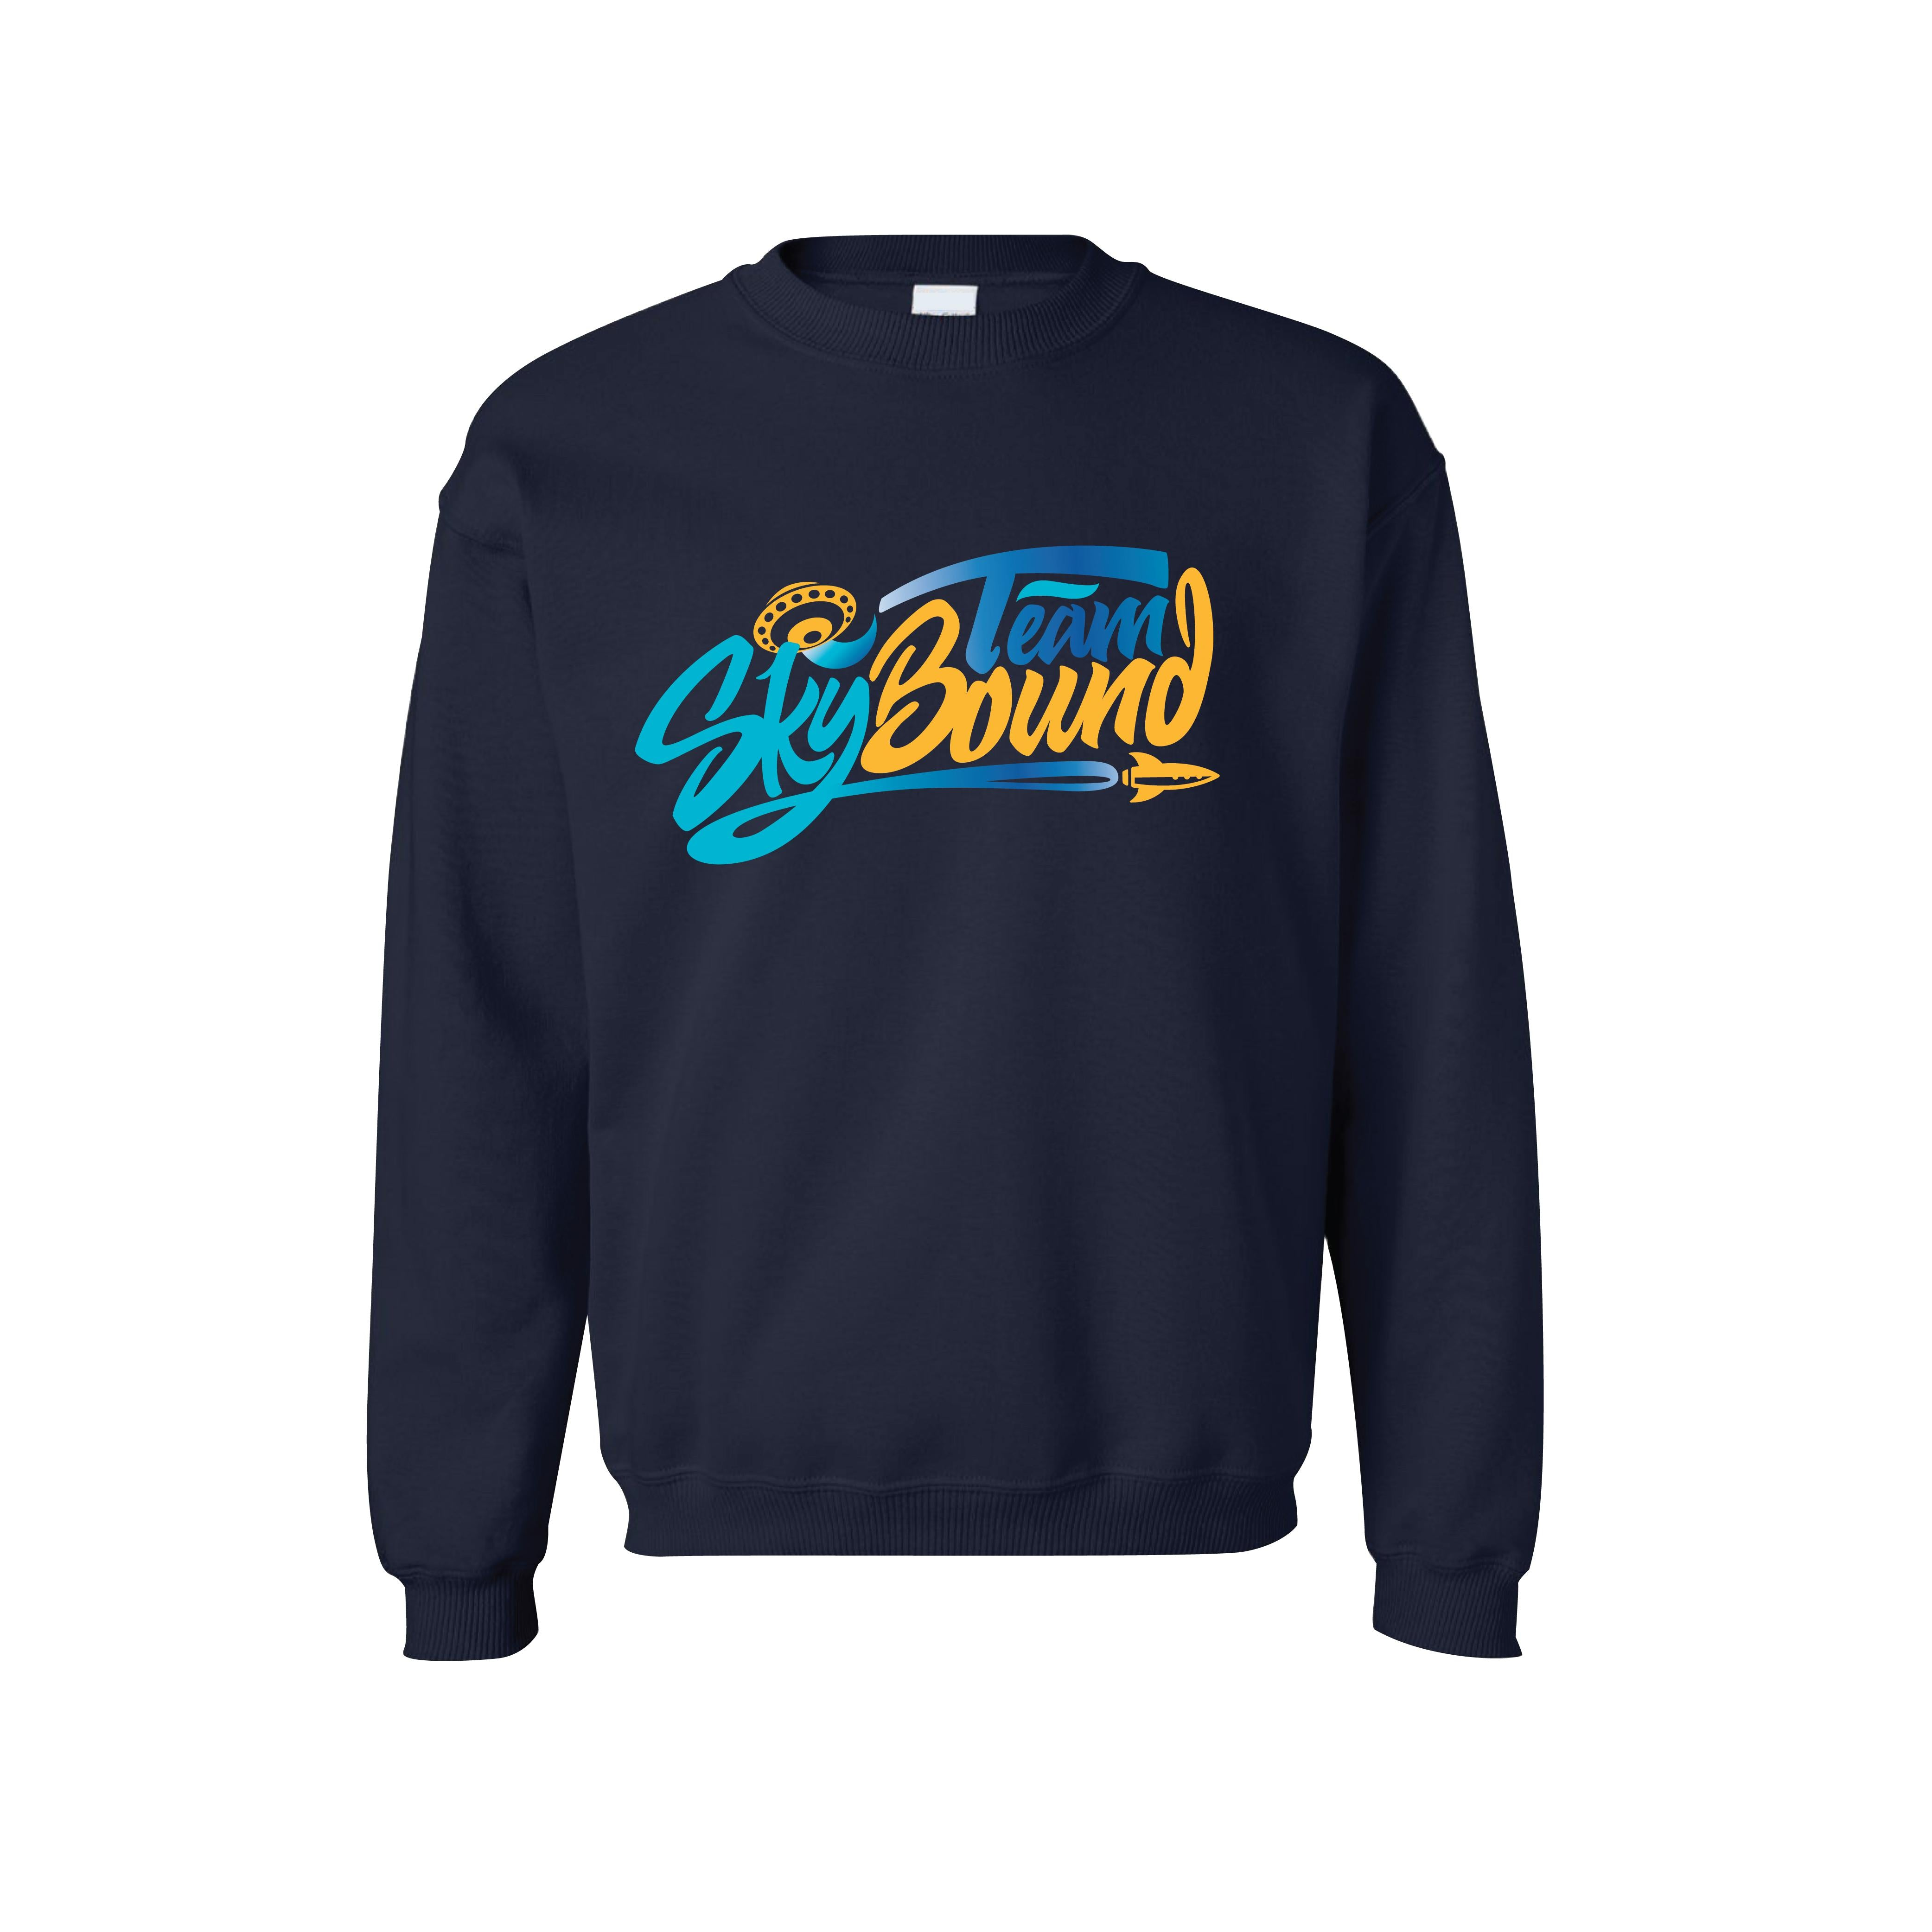 Team SkyBound Navy Blue Crewneck Sweatshirt